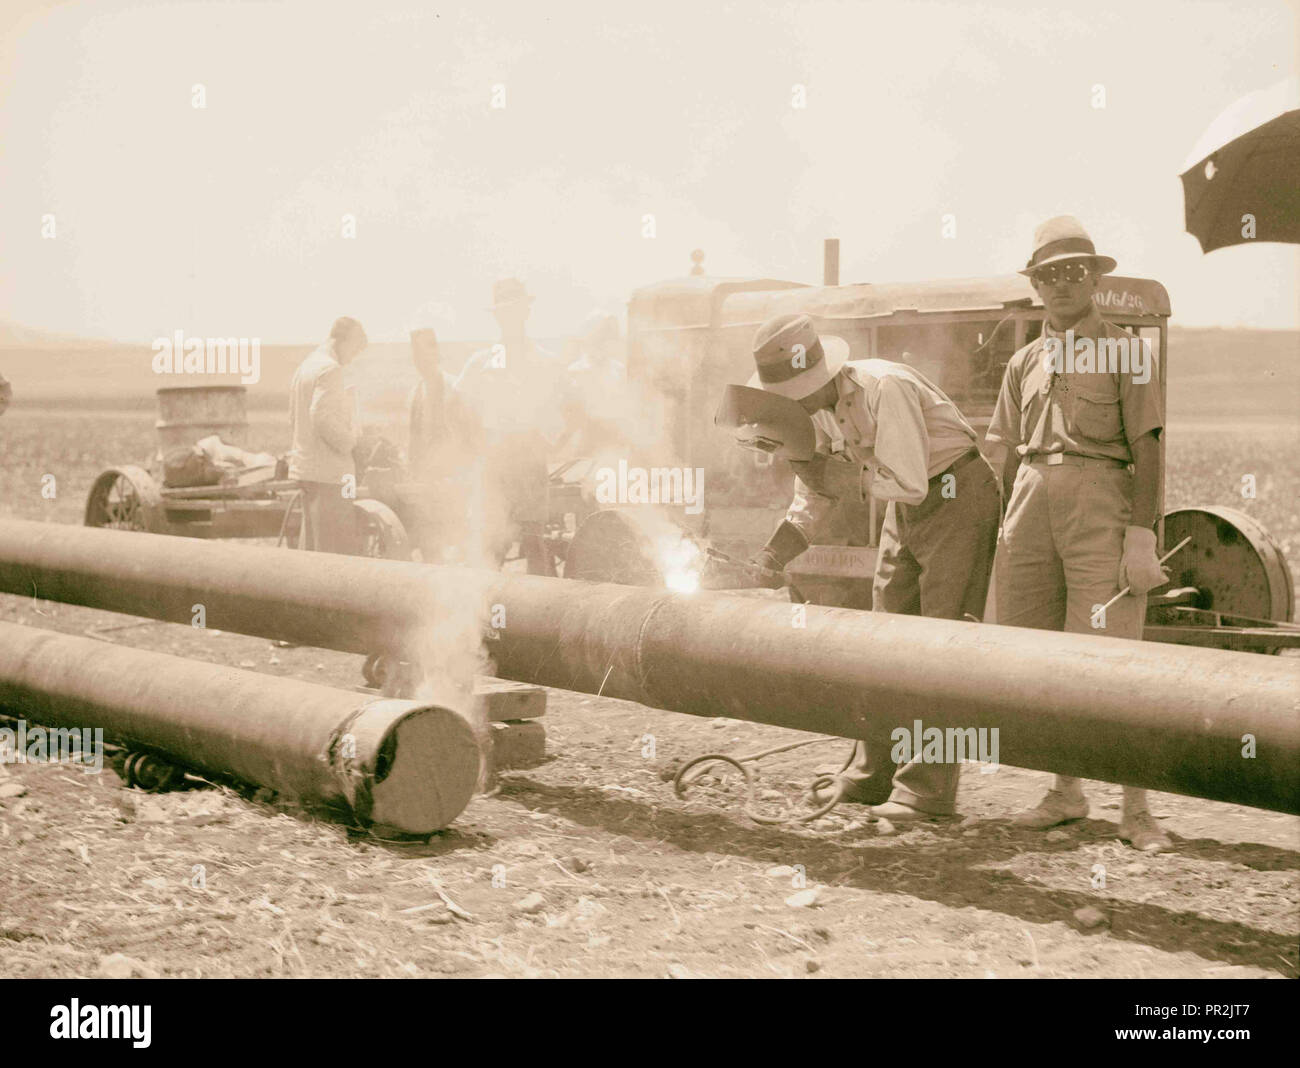 Laying of the Iraq Petroleum Company's pipe line across the Plain of Esdraelon, July 1933. Welding the pipe line. - Stock Image